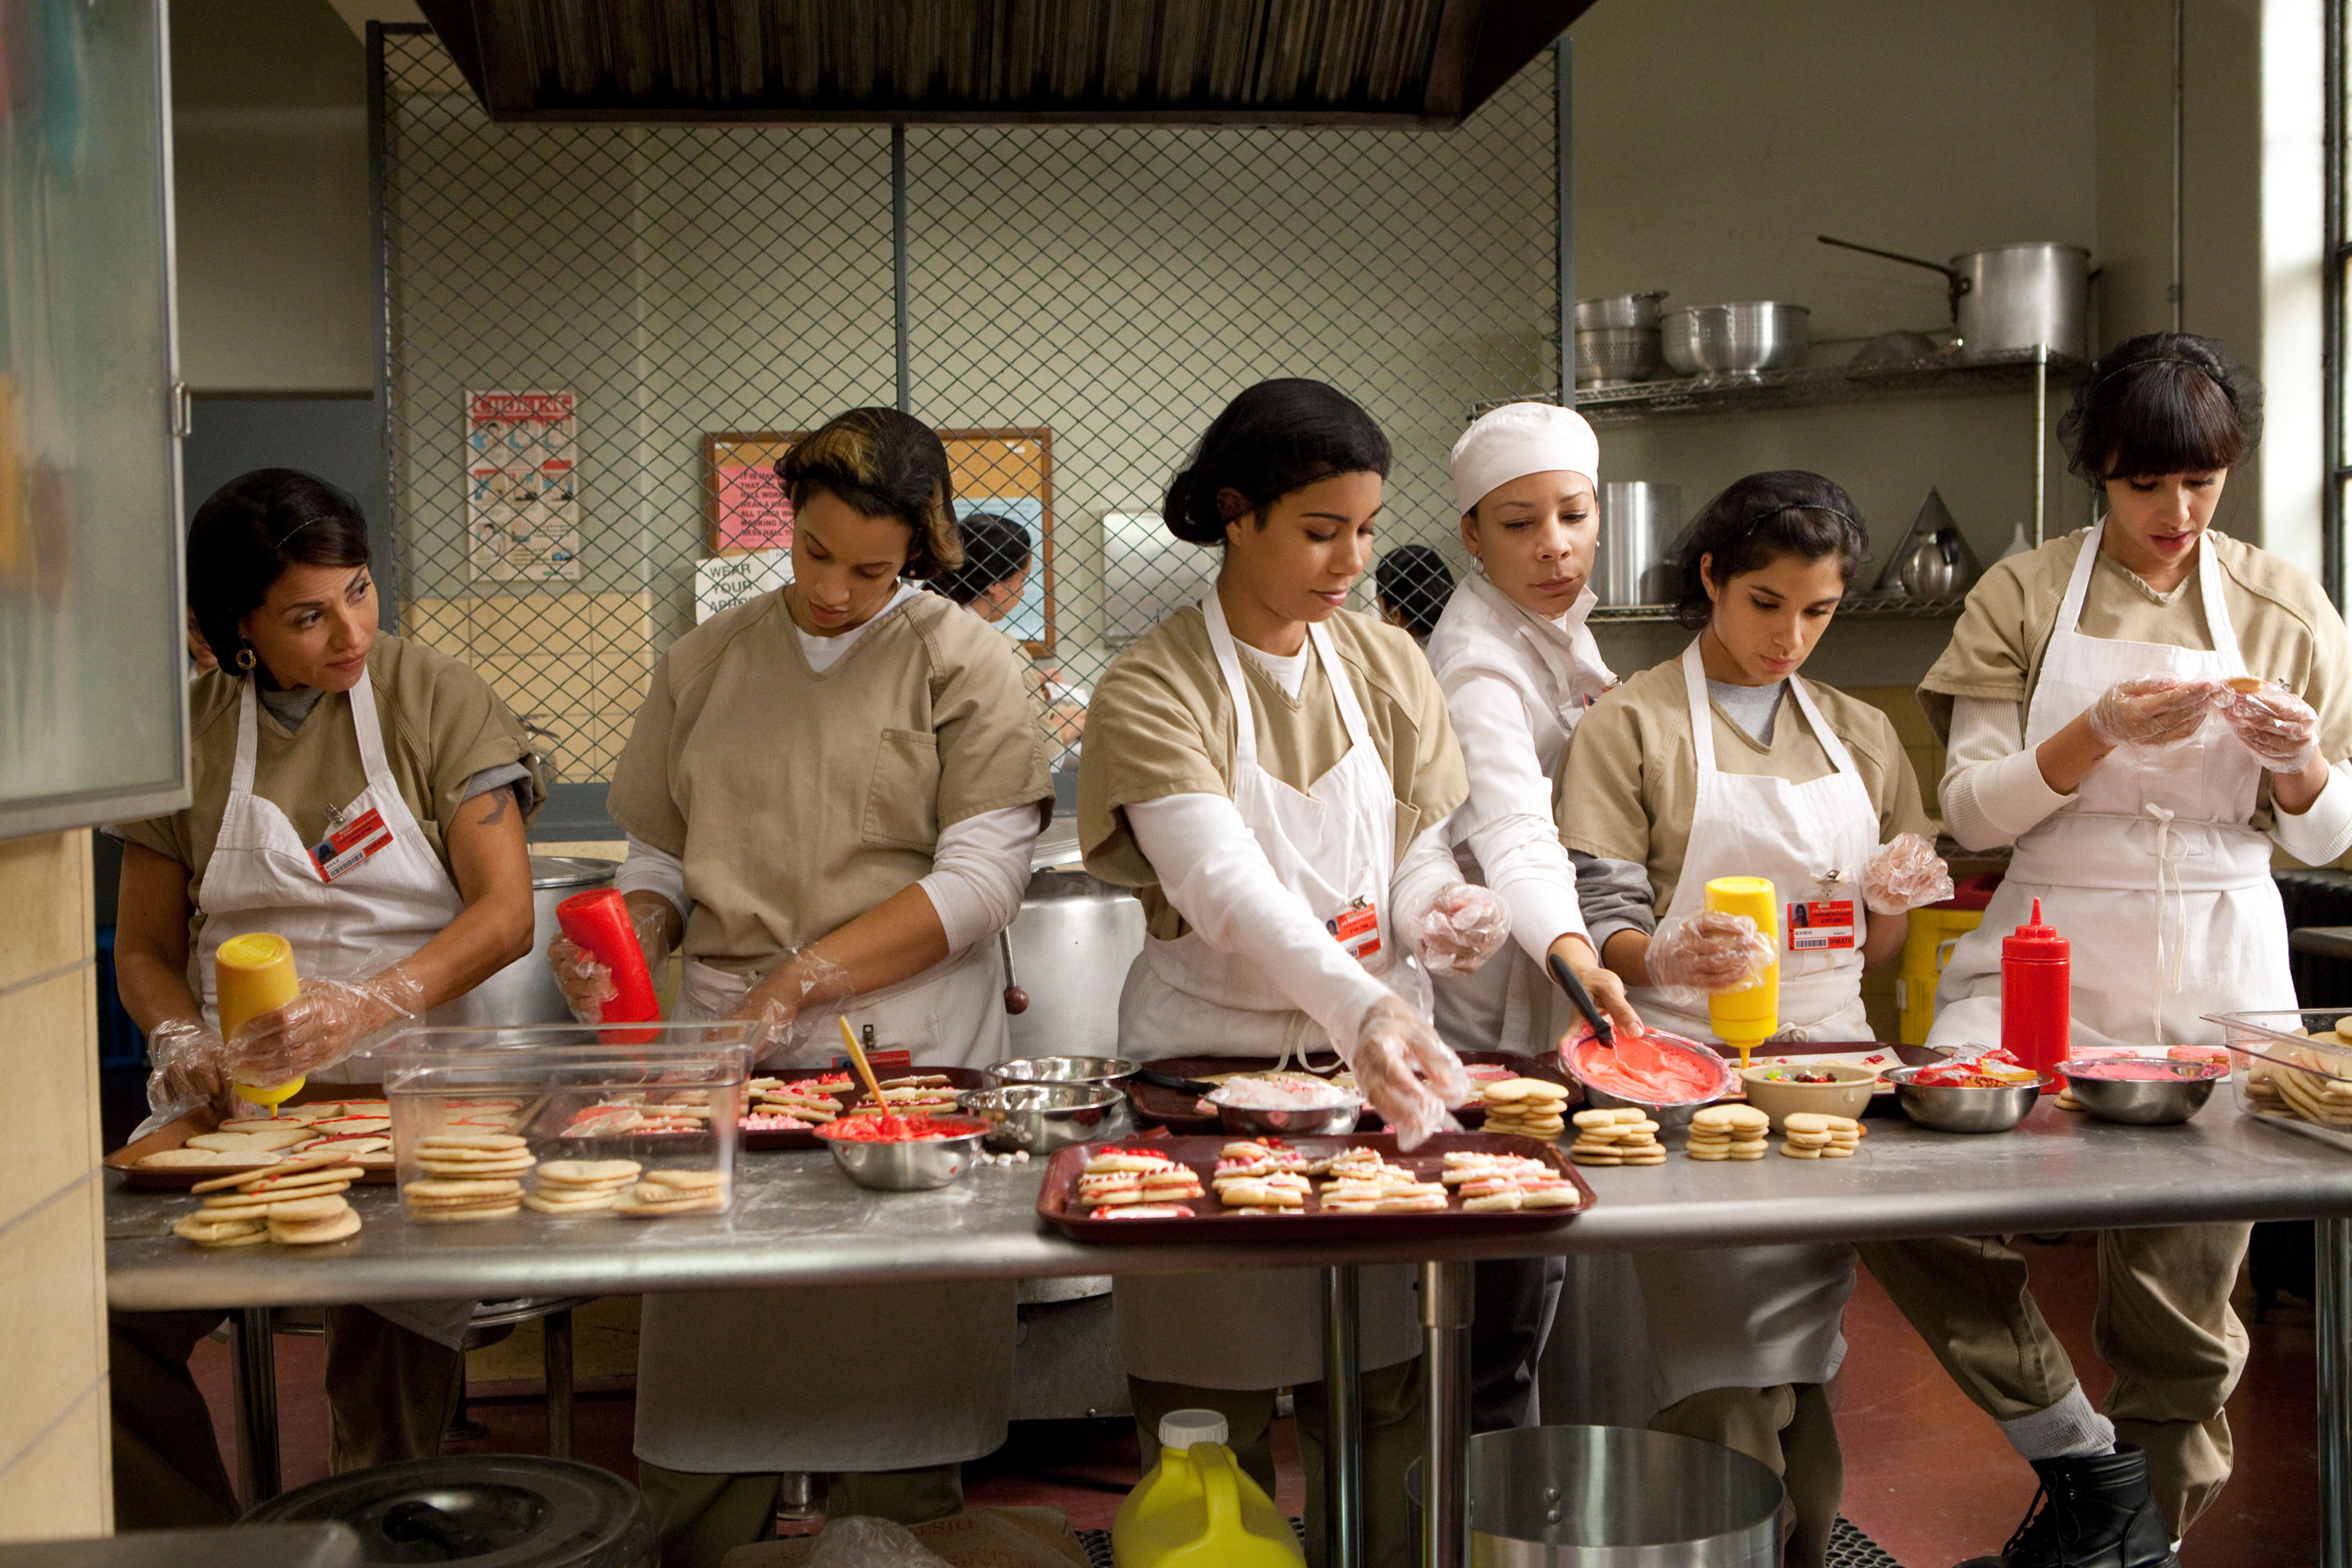 From Pernil to Tamales: Stars of 'Orange is the New Black' & 'Looking' Invite Us to Christmas Dinner